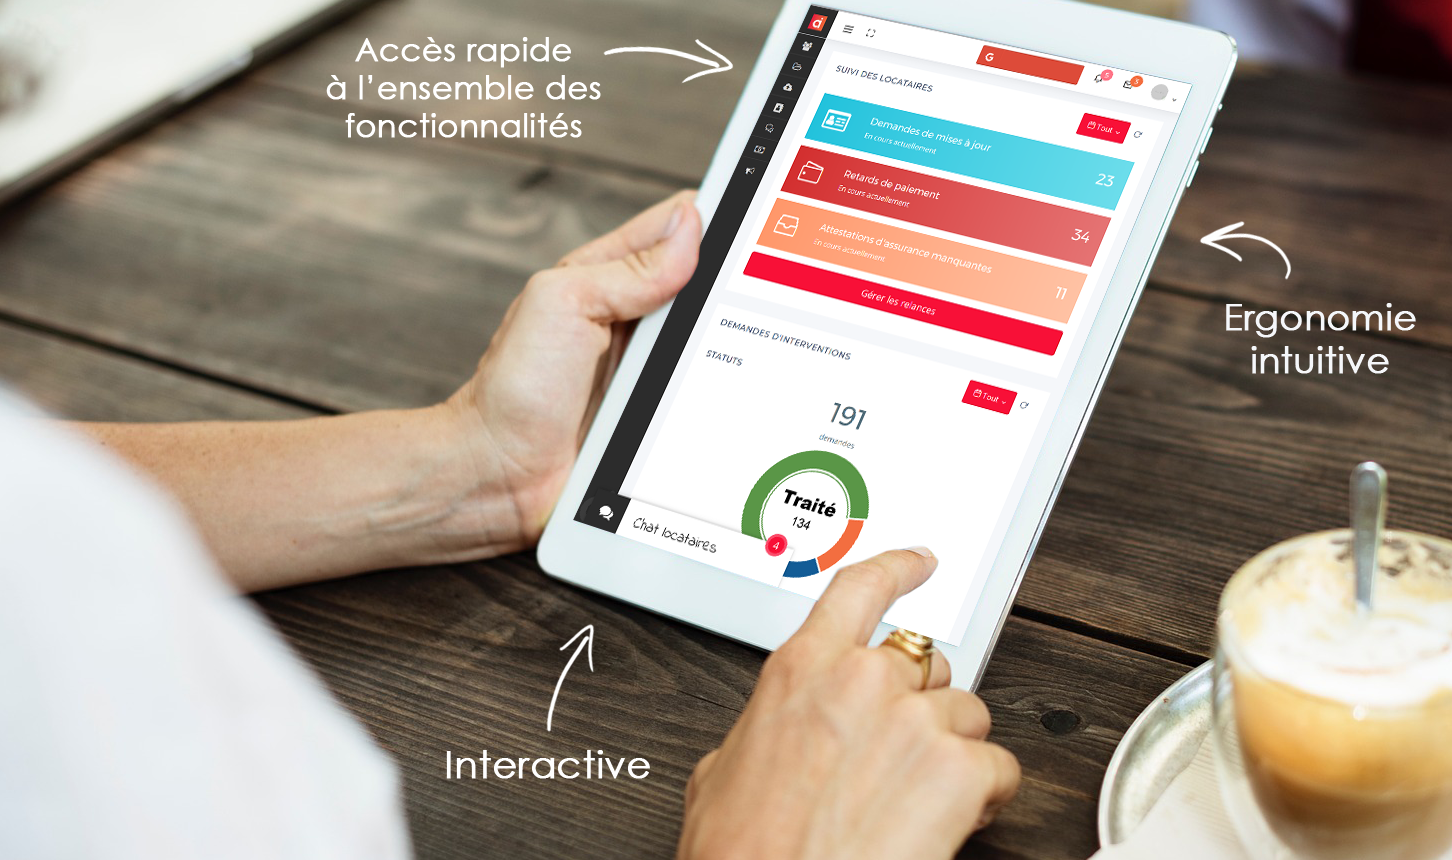 ActiLoc tablette mock-up extranet transports